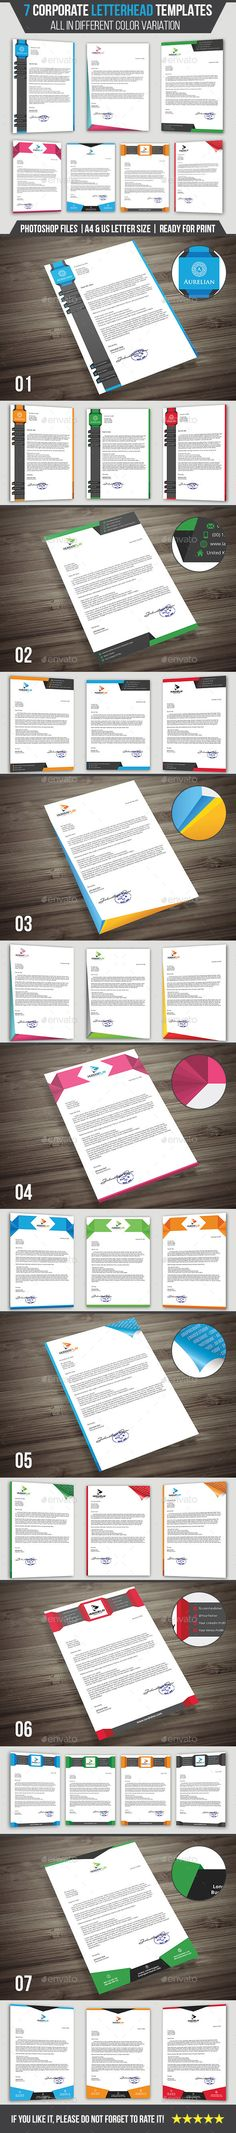 Letterhead Template EPS INDD PSD MS